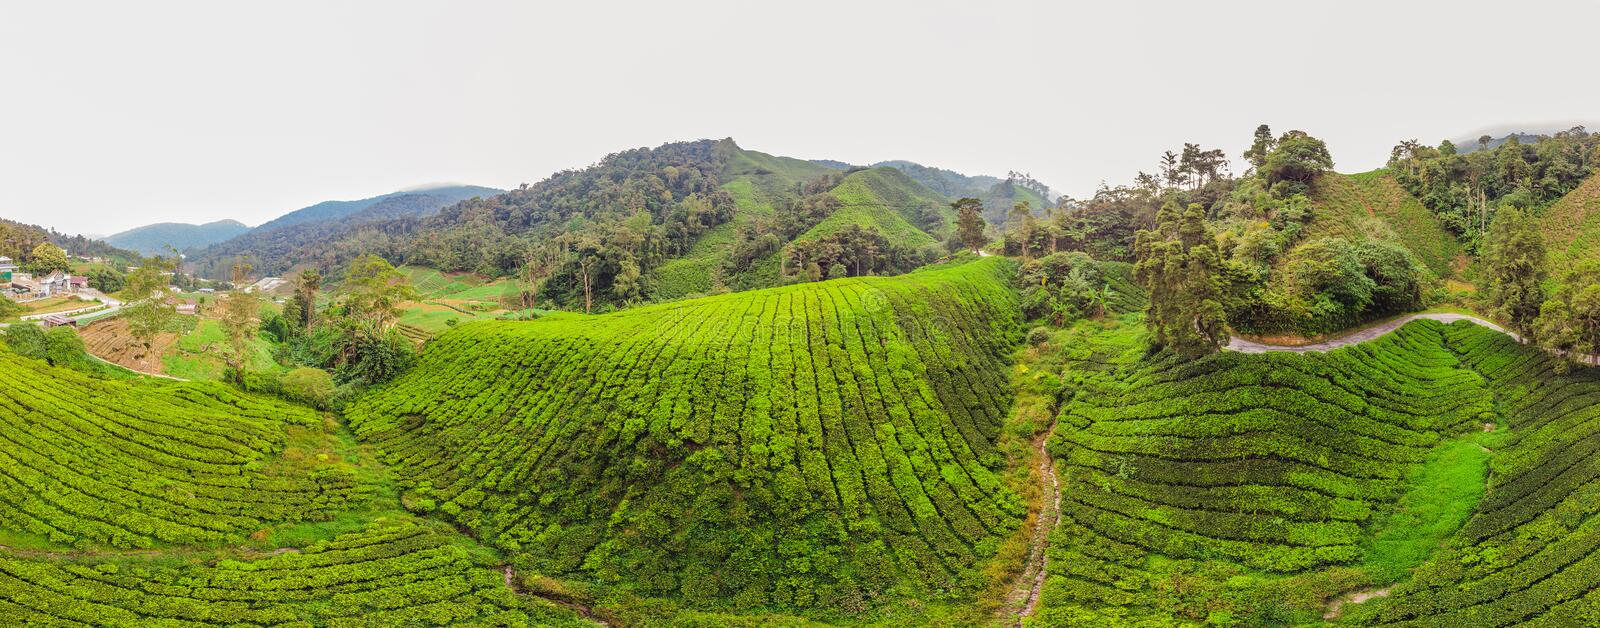 BANNER Amazing landscape view of tea plantation in sunset, sunrise time. Nature background with blue sky and foggy, long format.  royalty free stock photos